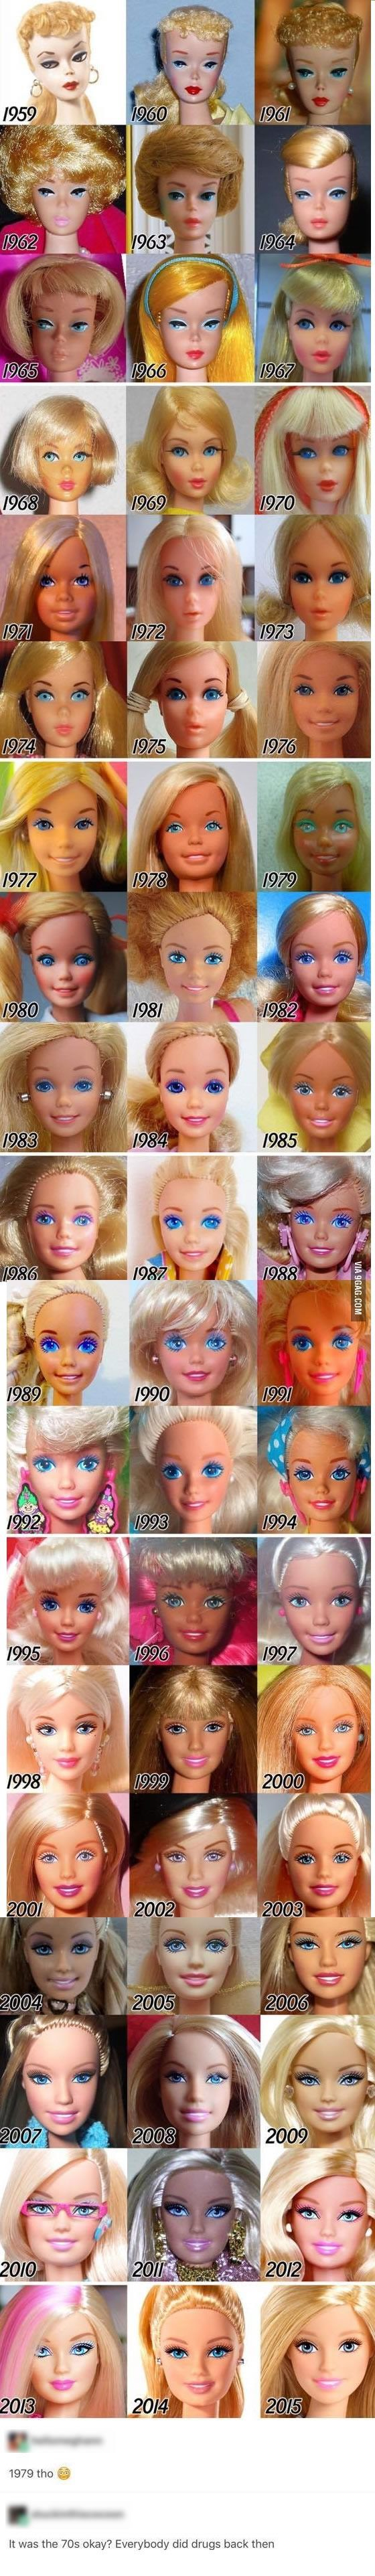 BARBIE FOREVER  Barbies from 1959 - 2015